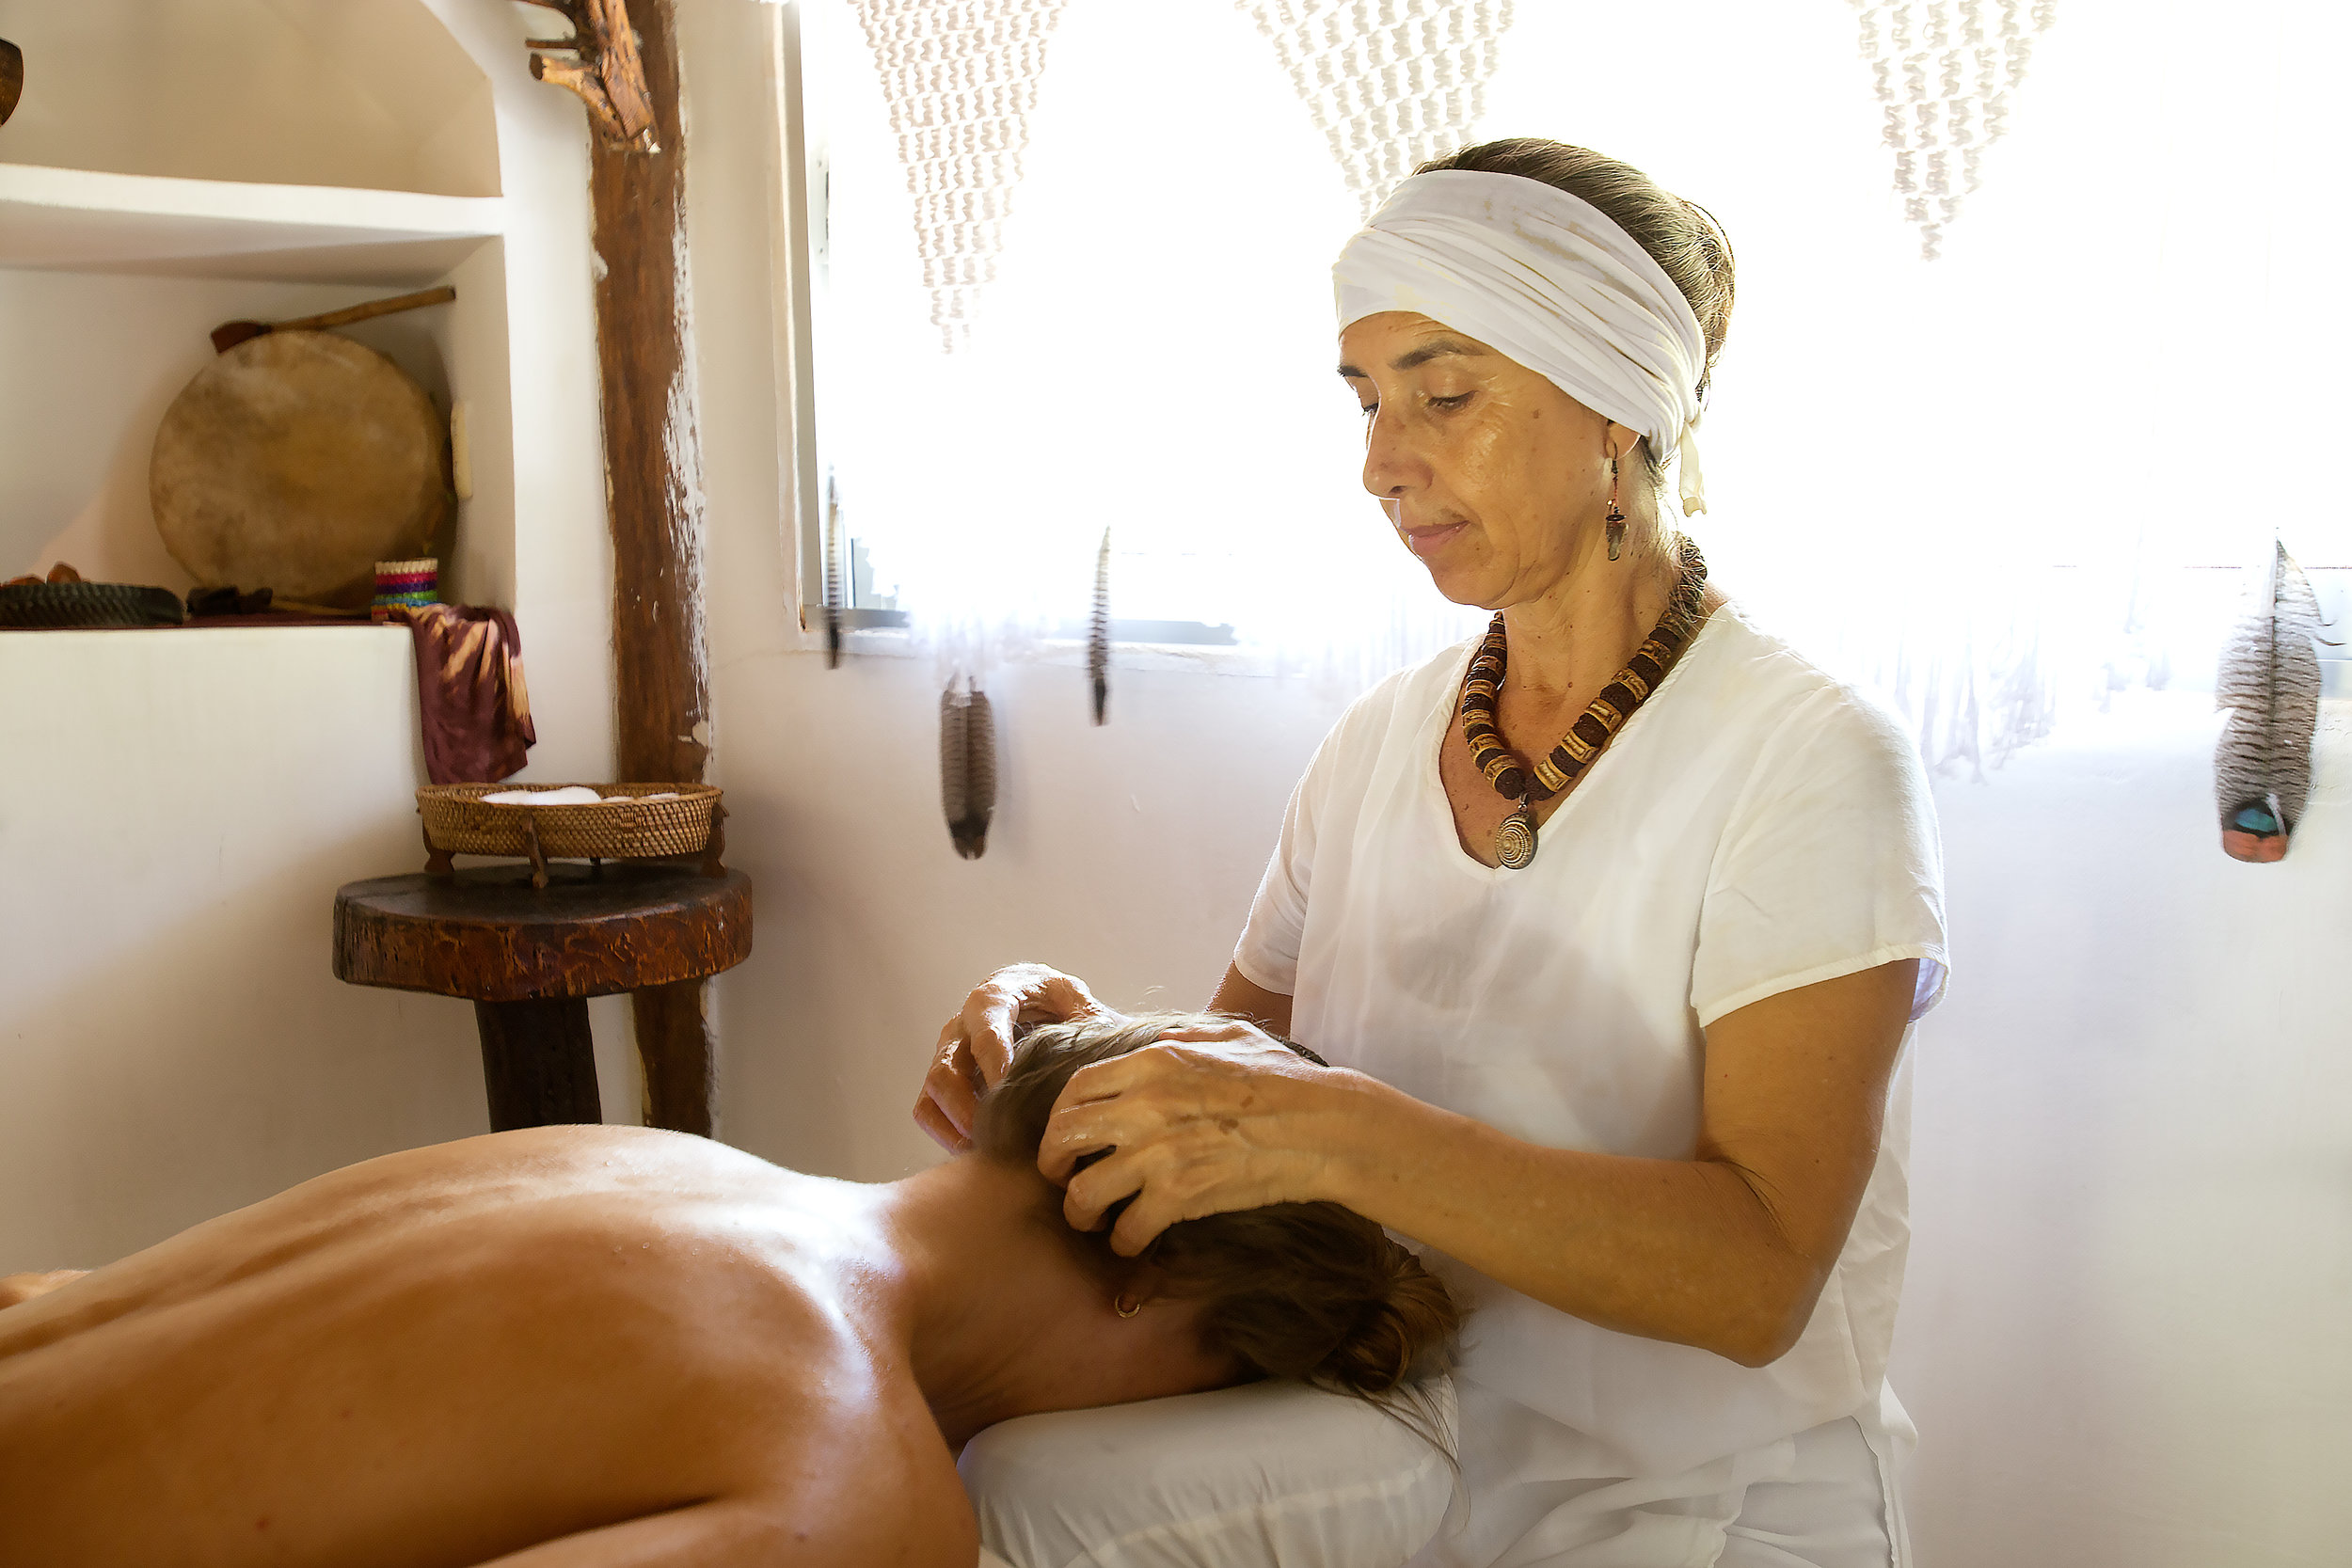 restore your body & soul - spa services